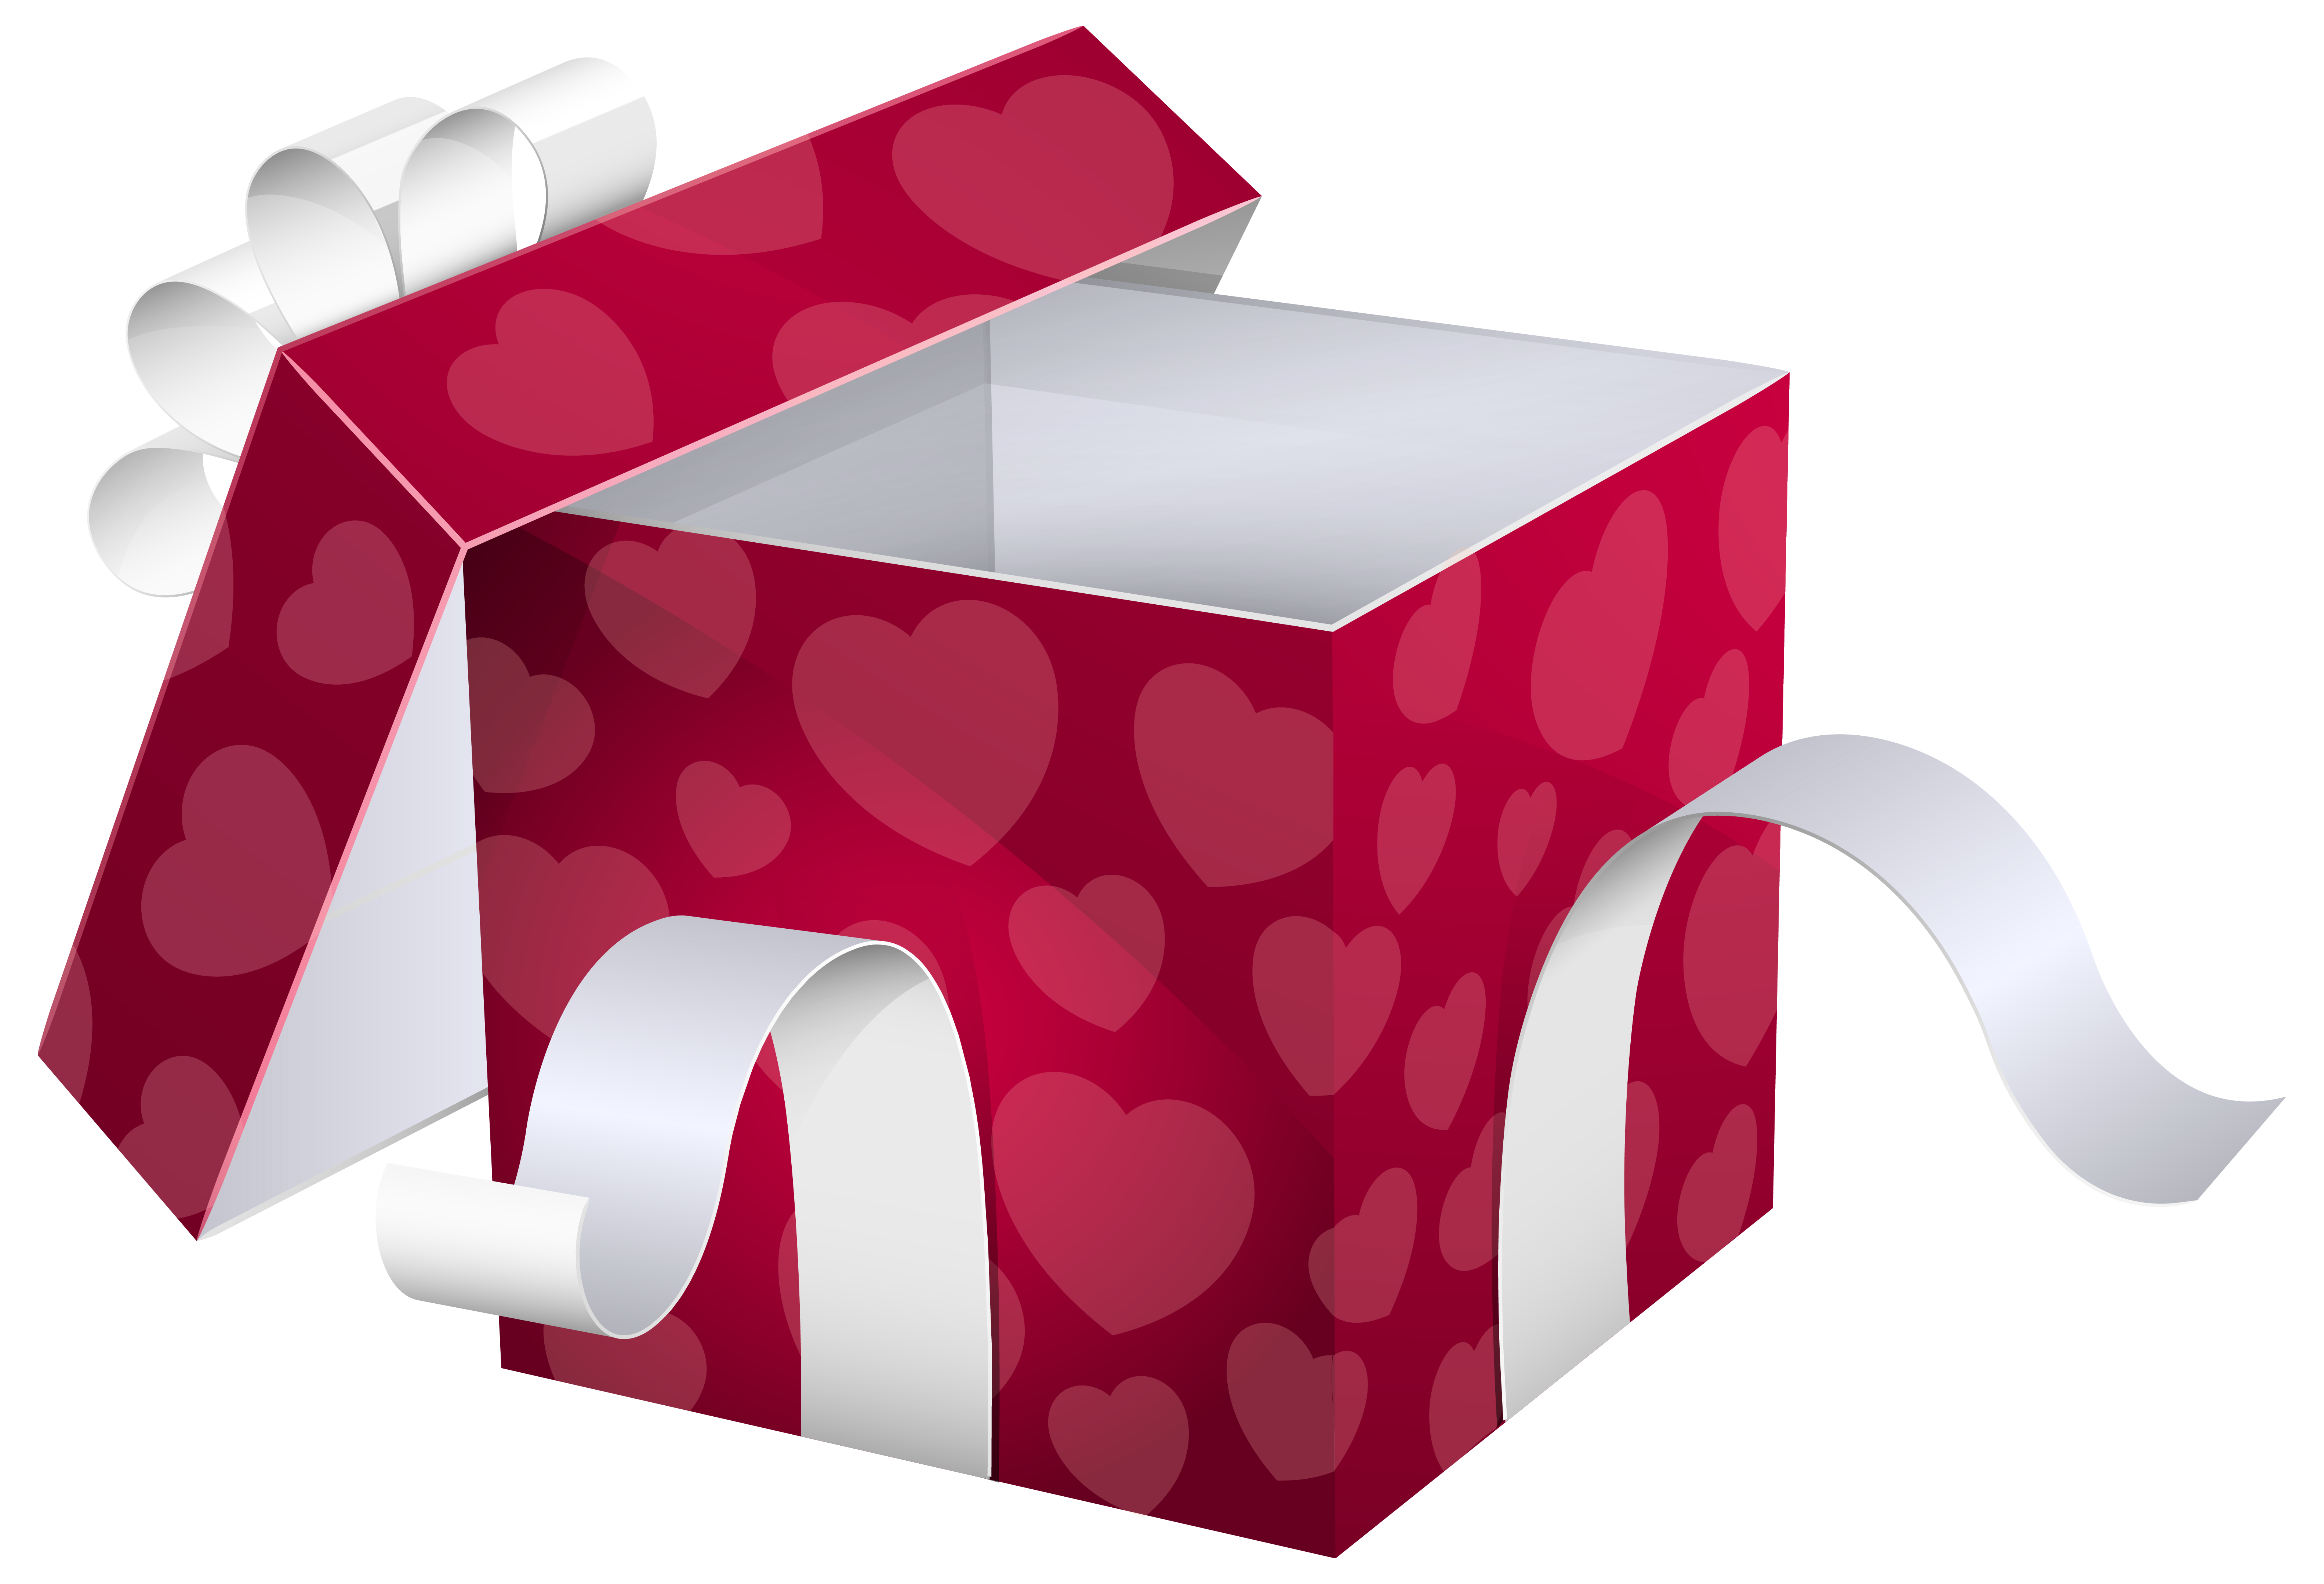 Gift clipart love gift. Open pink box png